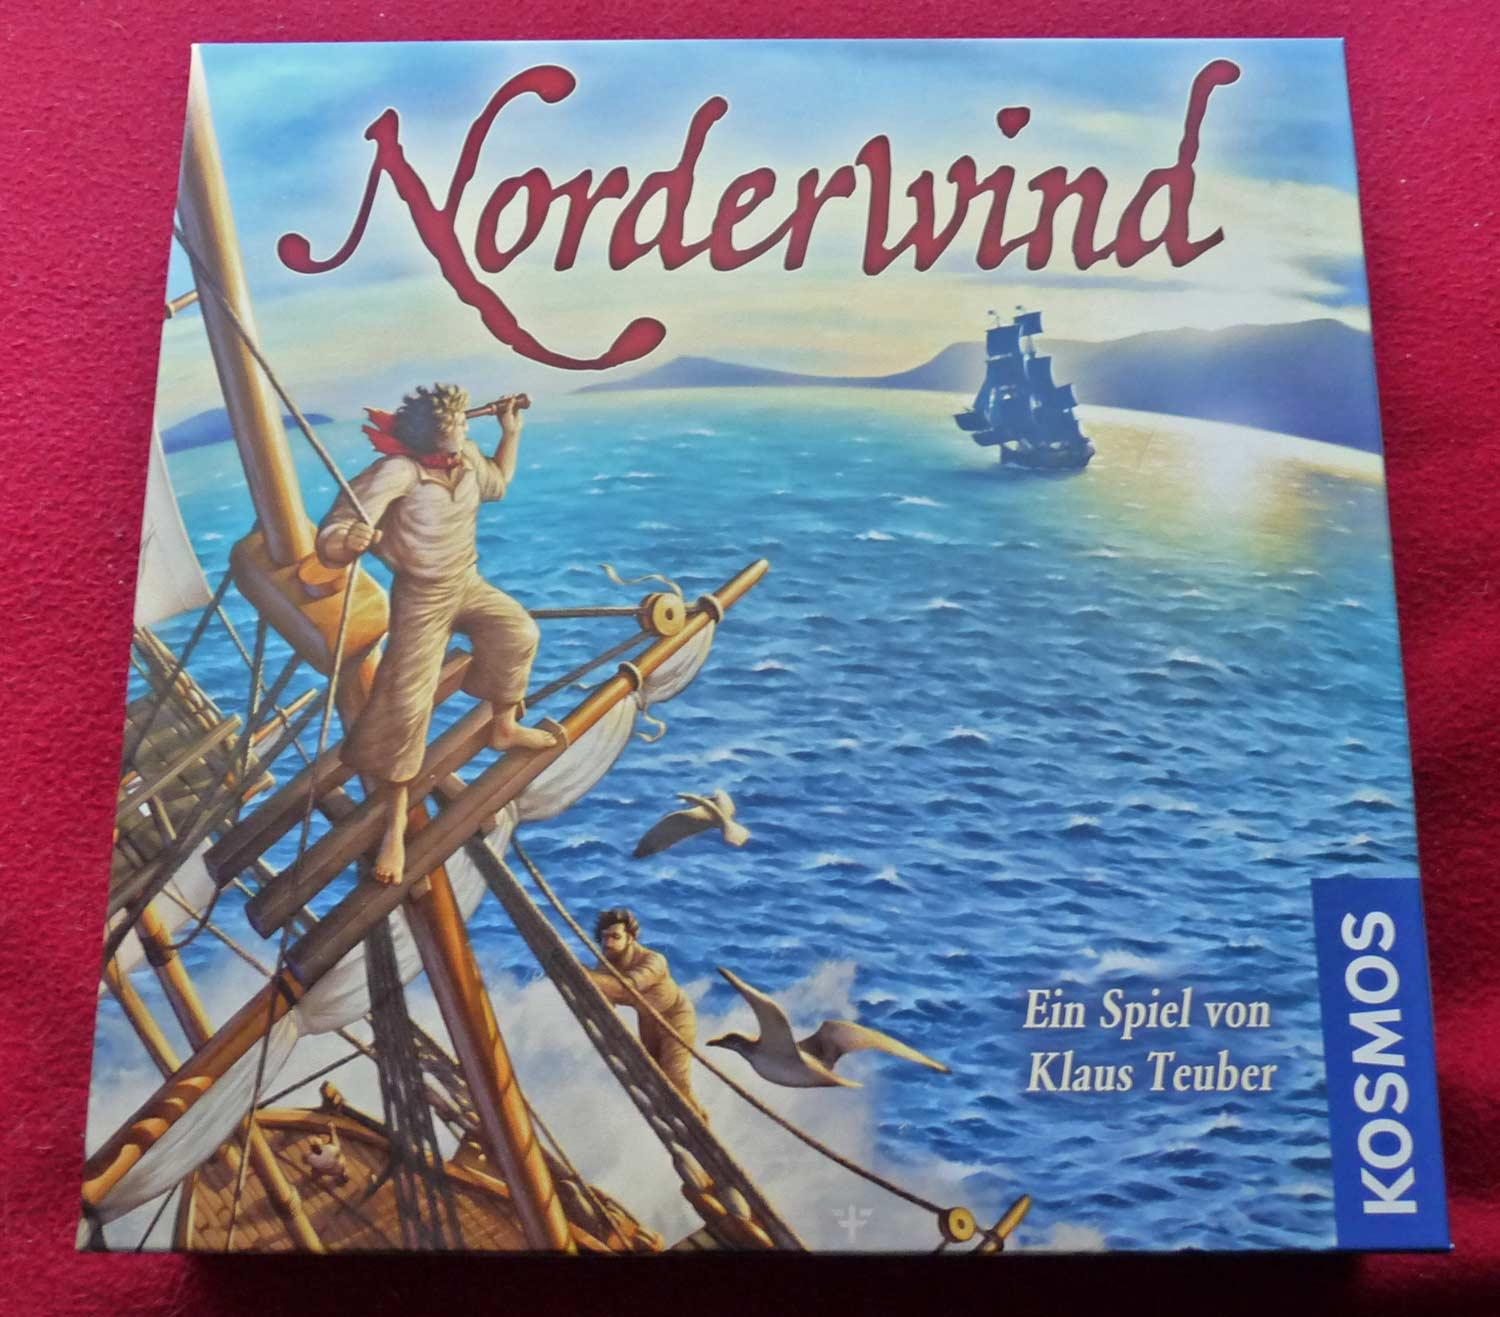 Rezension zu Norderwind